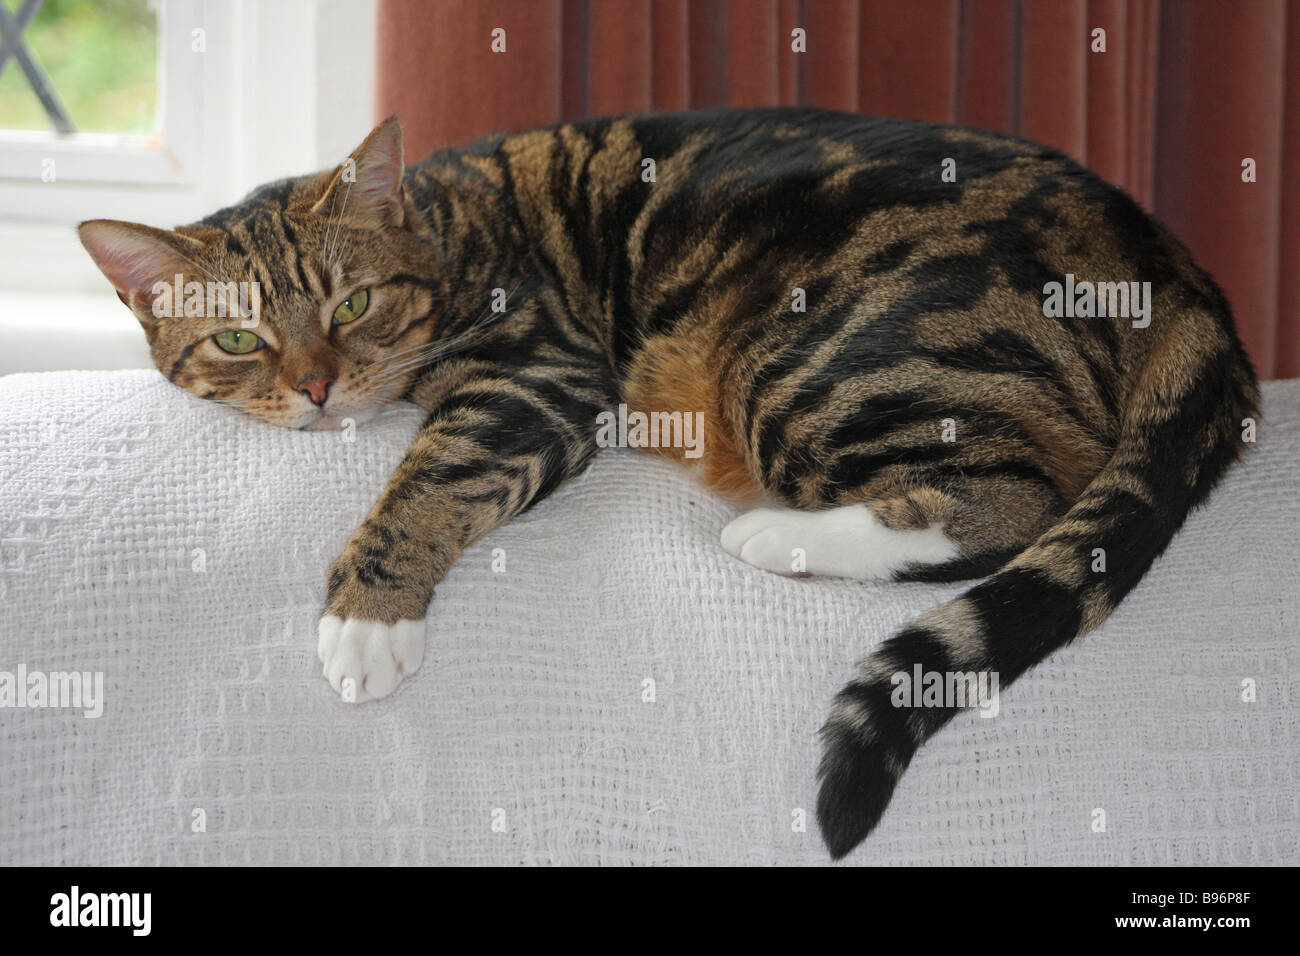 Cat With White Feet High Resolution Stock Photography And Images Alamy